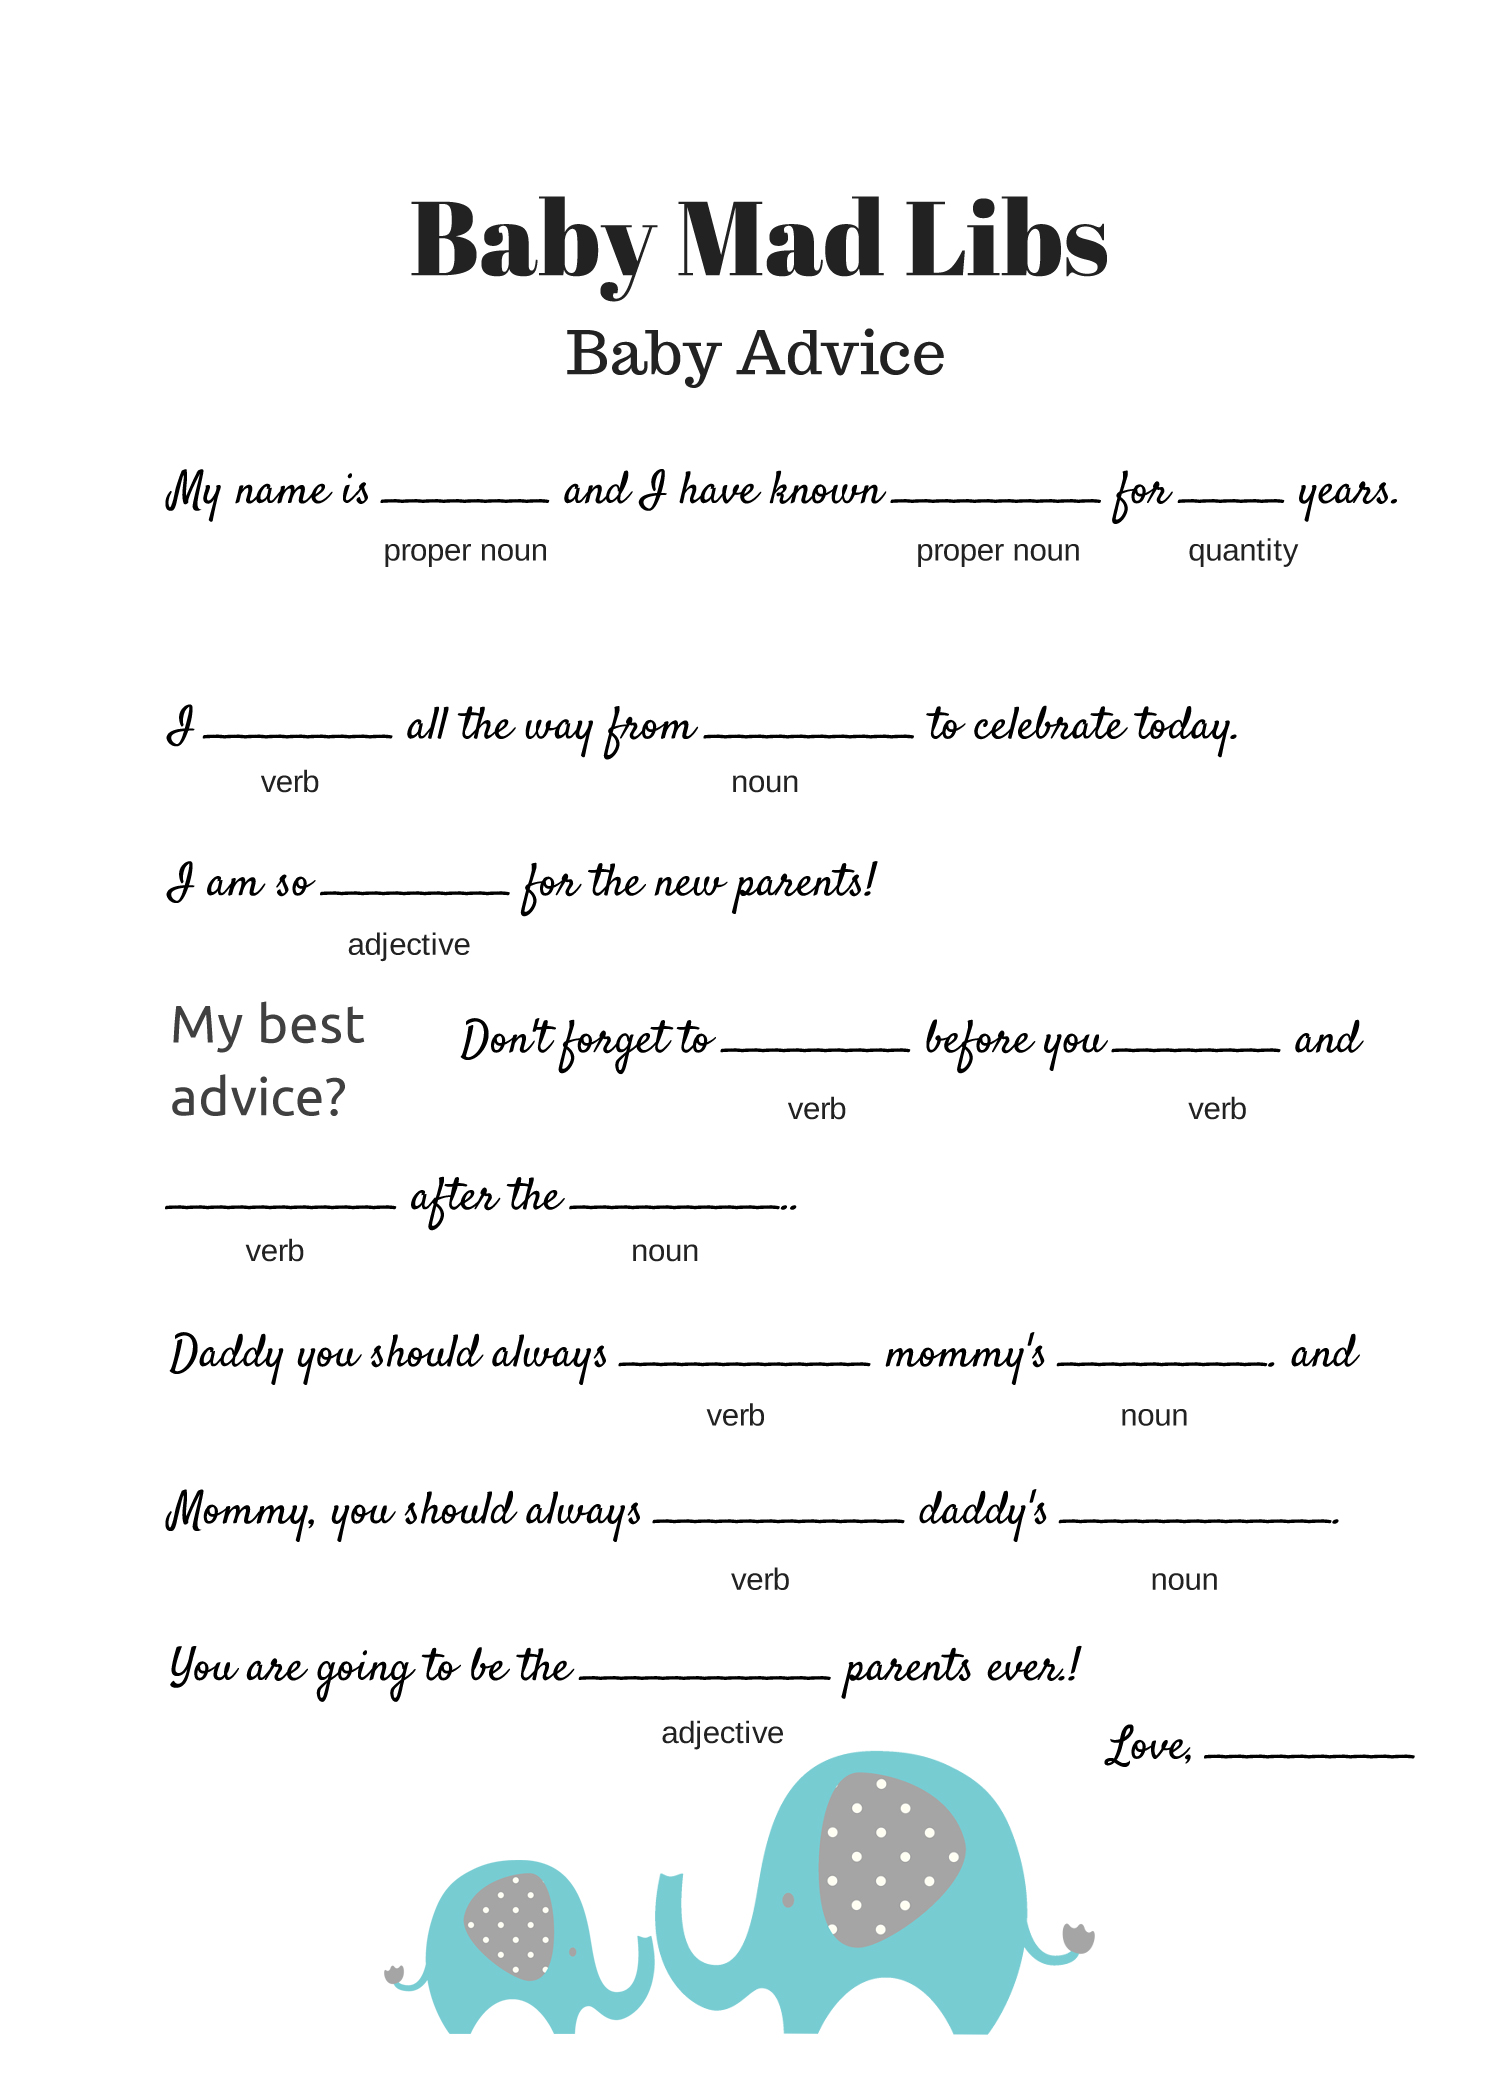 Blue Elephant Free Baby Shower Mad Libs Game Baby Advice Game